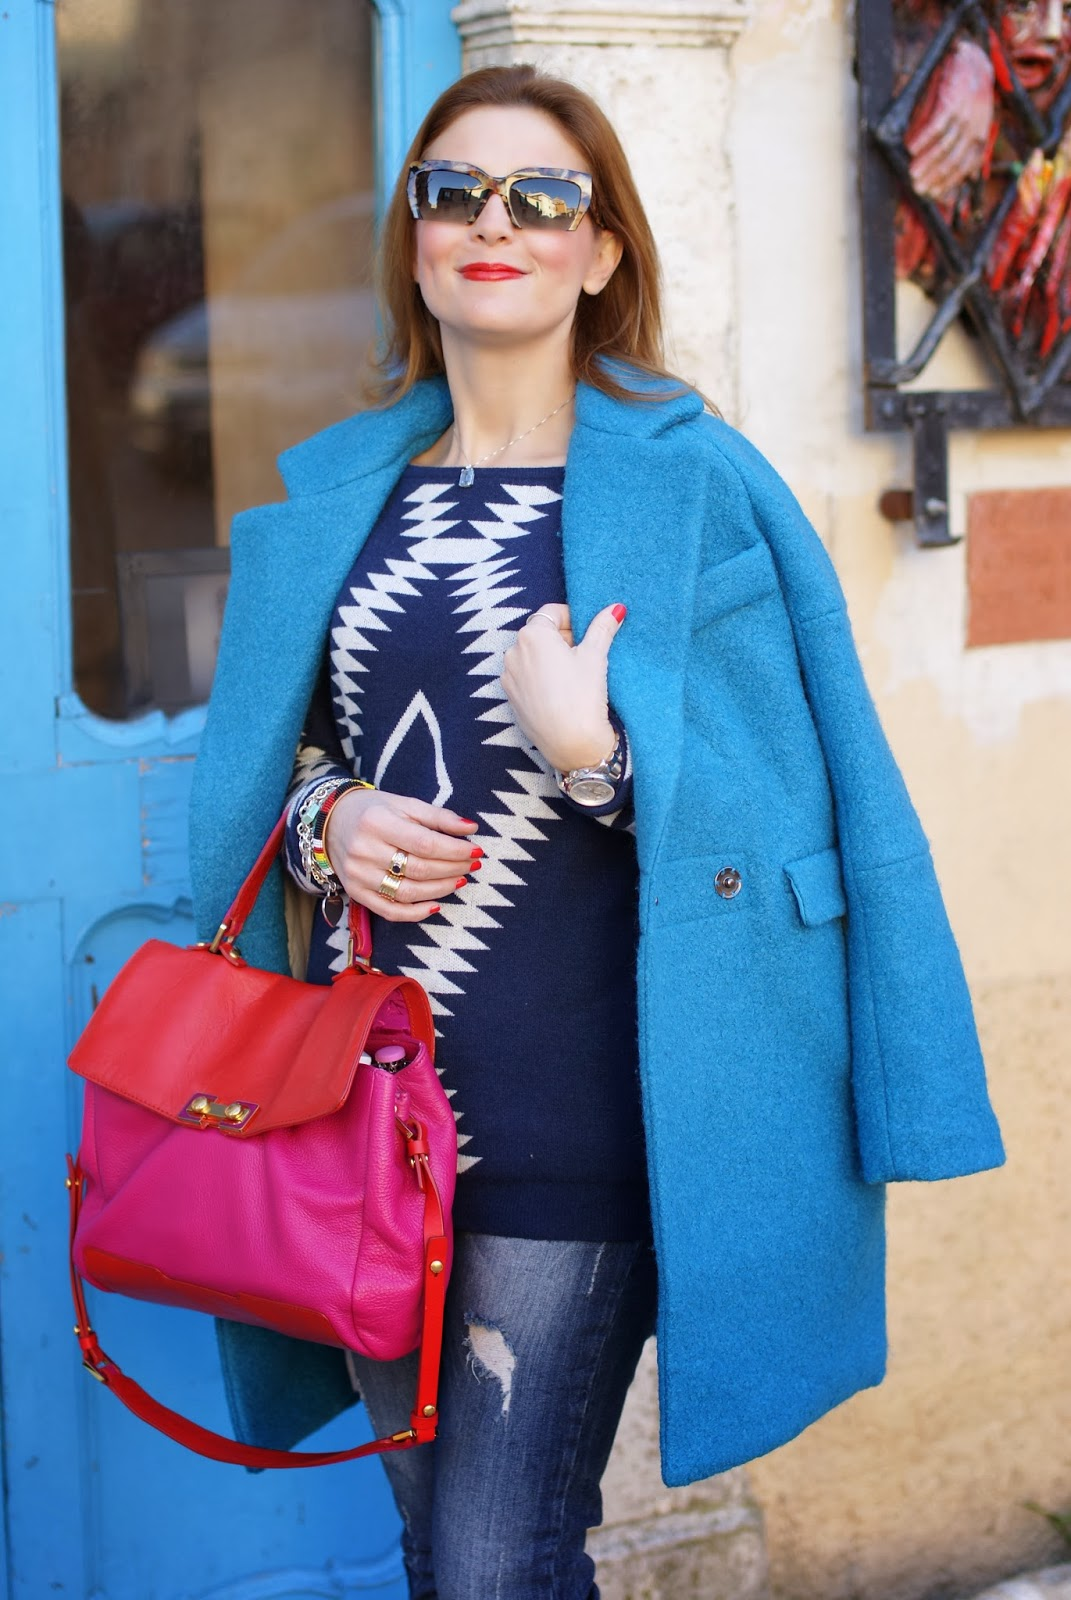 Miu Miu rasoir sunglasses, Blue oversized coat, Marc by Marc Jacobs color block bag, Fashion and Cookies, fashion blogger